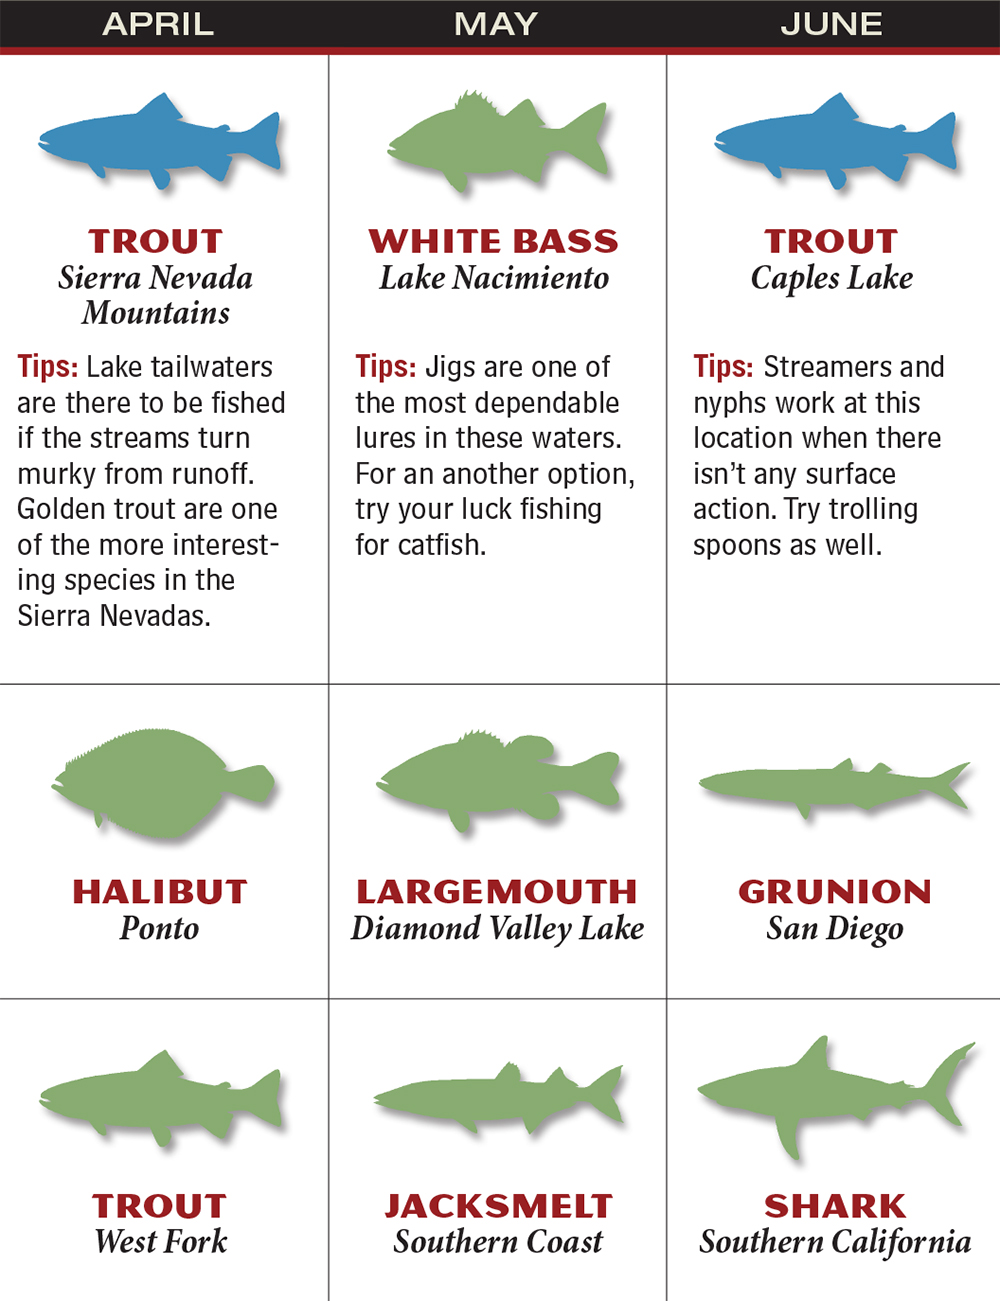 California 2016 Fishing Calendar